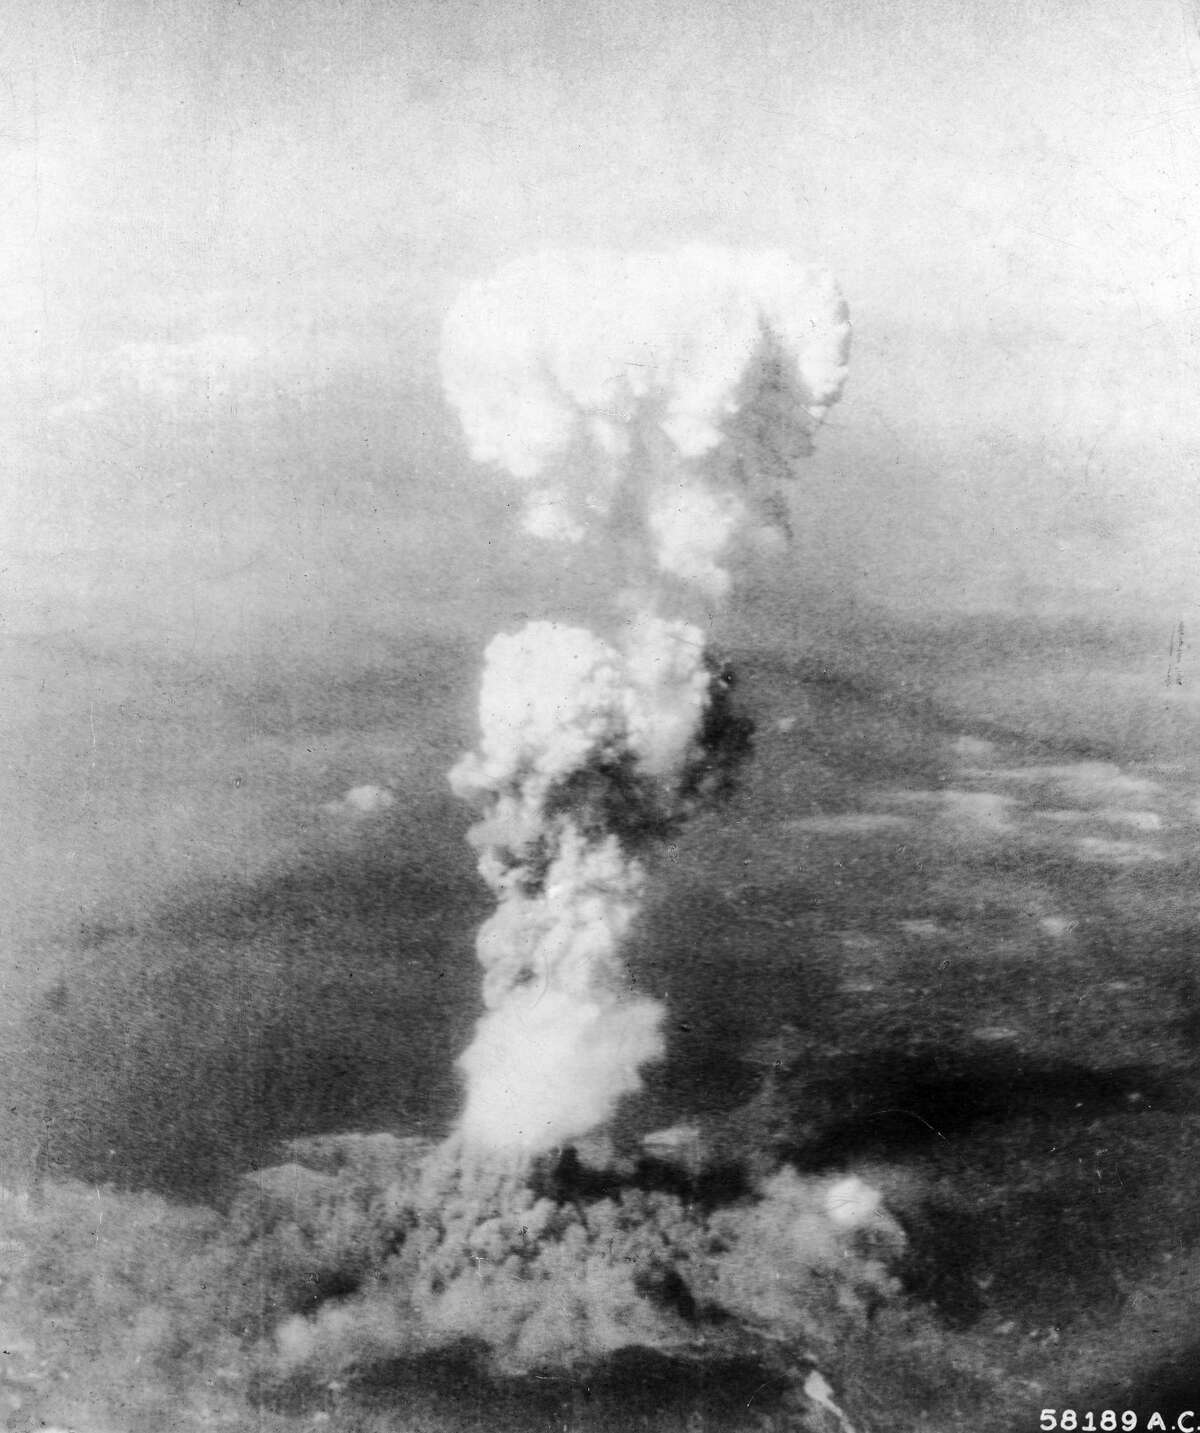 Aerial view of the mushroom cloud of smoke as it billows 20,000 ft. in the air, following the United States Air Force's detonation of an atomic bomb over the city of Hiroshima, Japan, August 6, 1945. (Photo by Time Life Pictures/US Army Air Force/The LIFE Picture Collection/Getty Images)